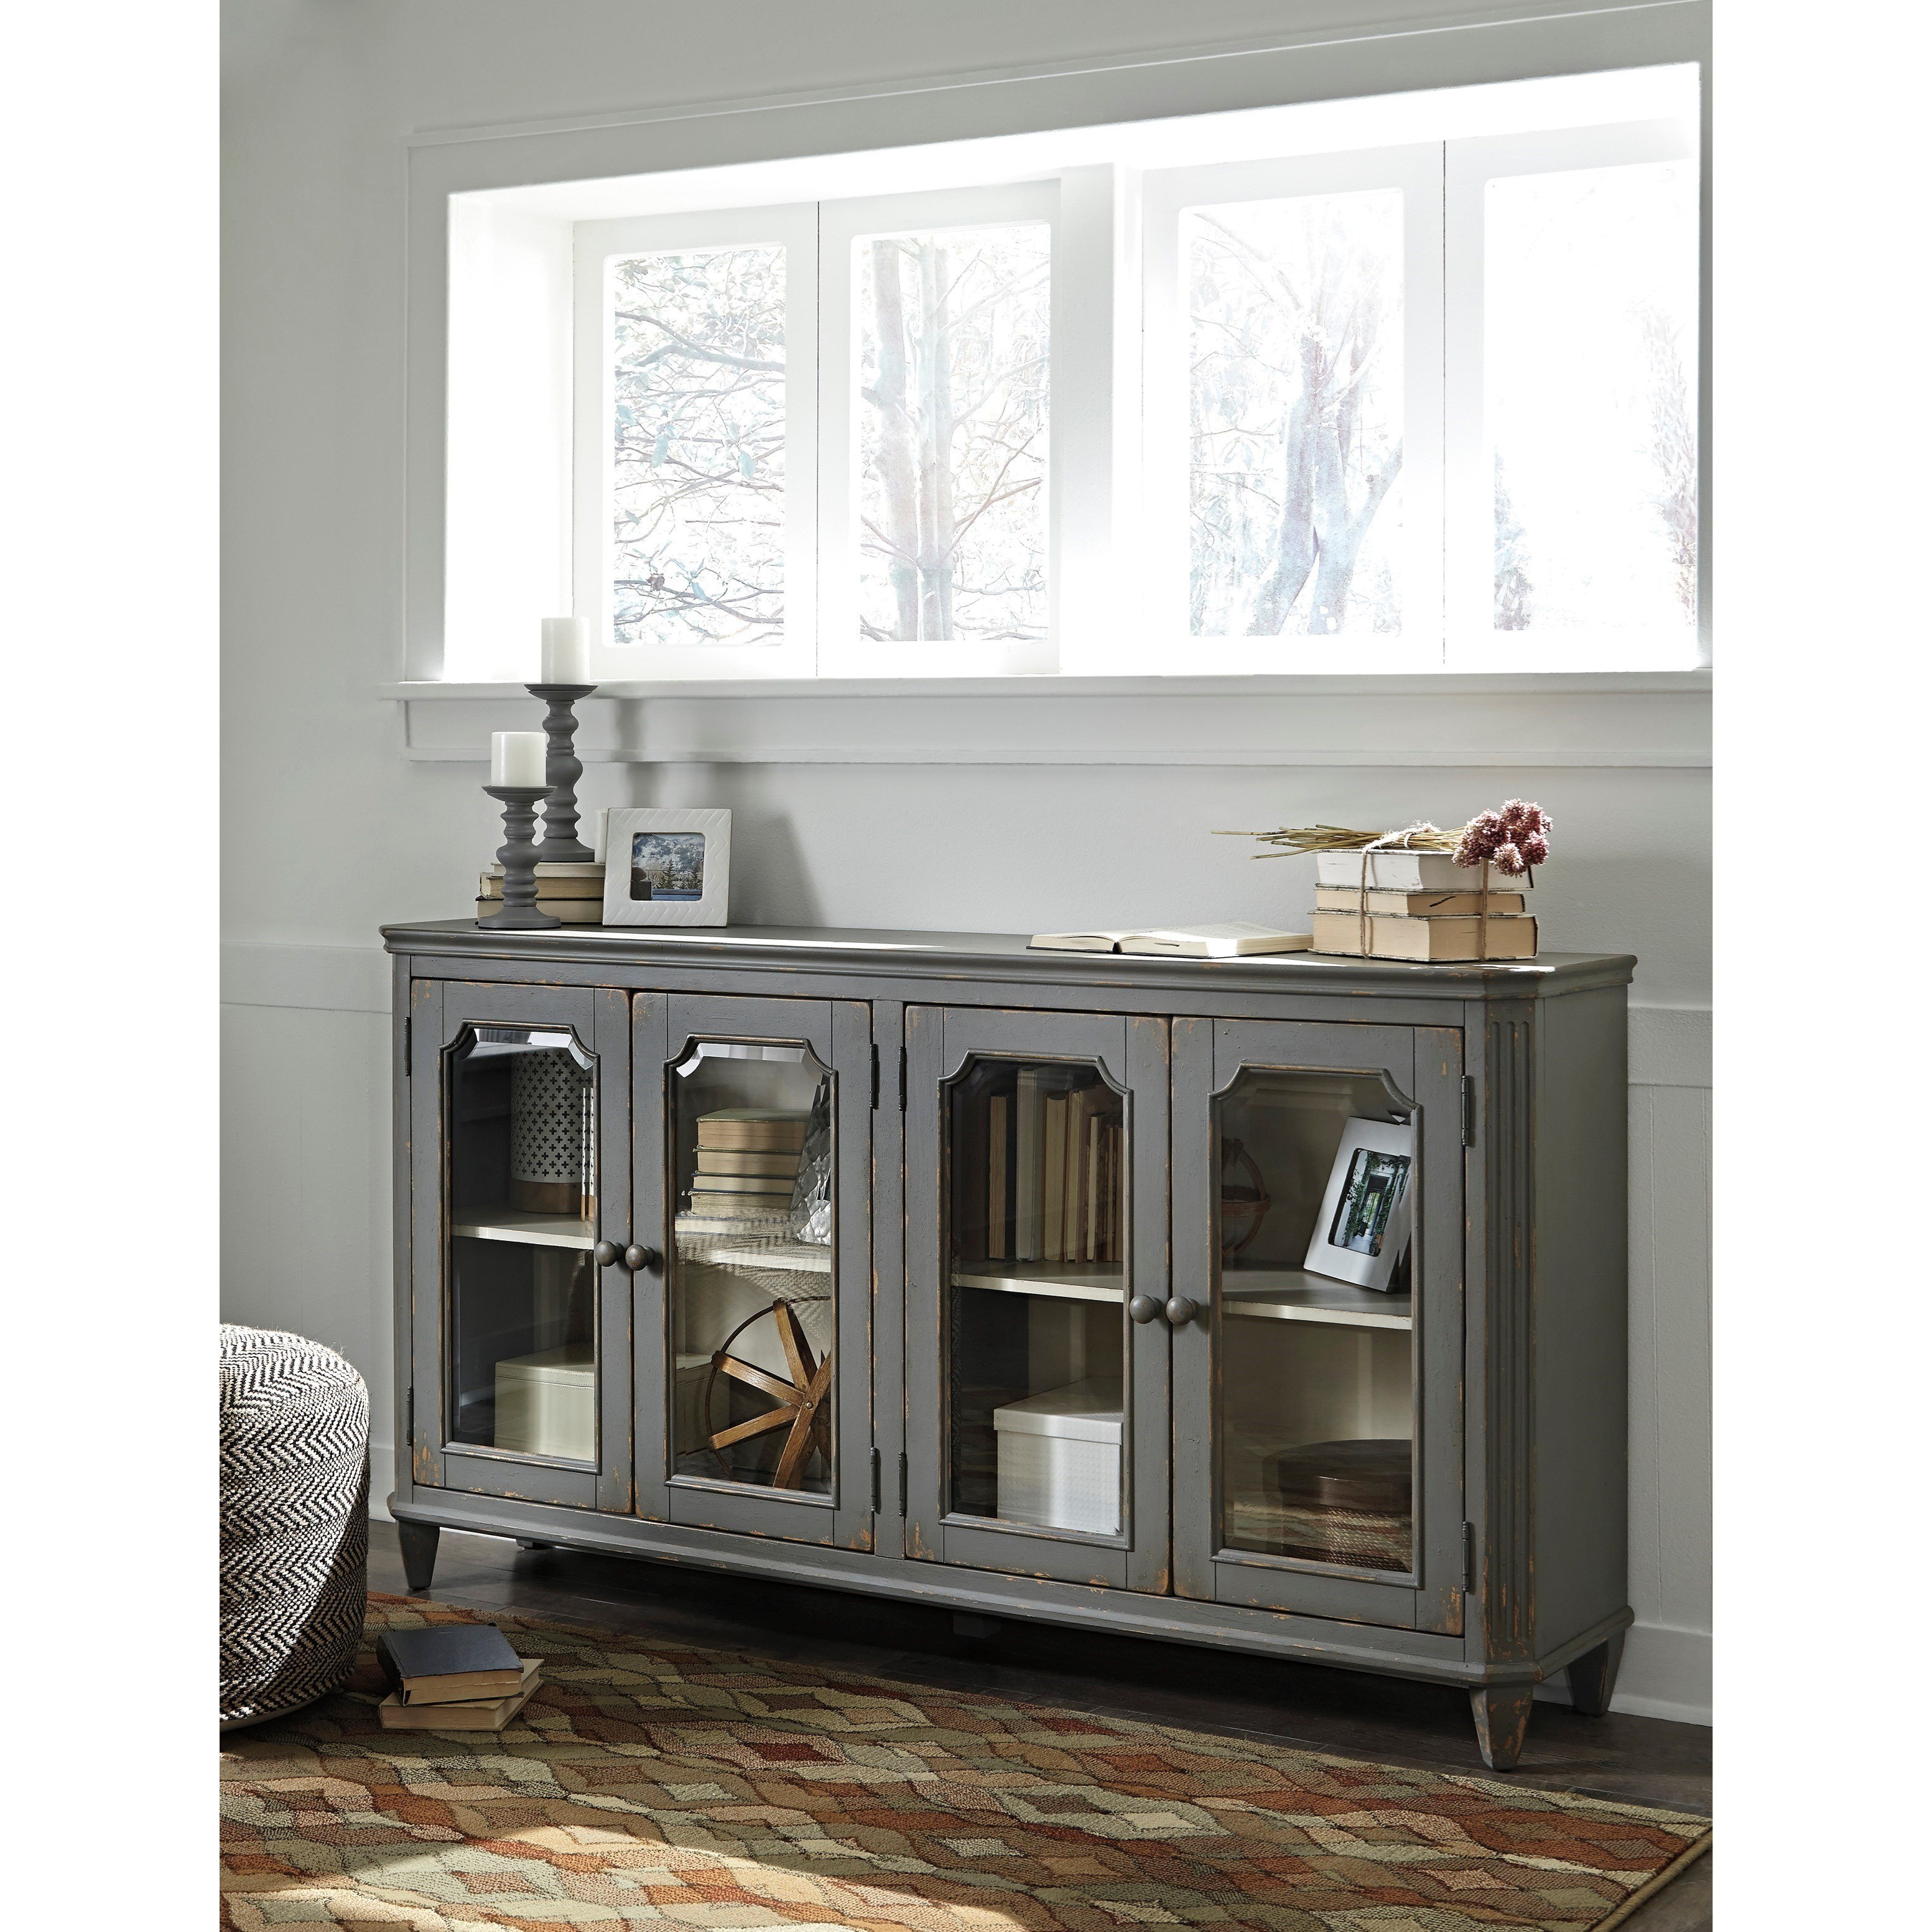 Accent cabinet with glass doors - French Provincial Style Glass Door Accent Cabinet In Antique Gray Finish